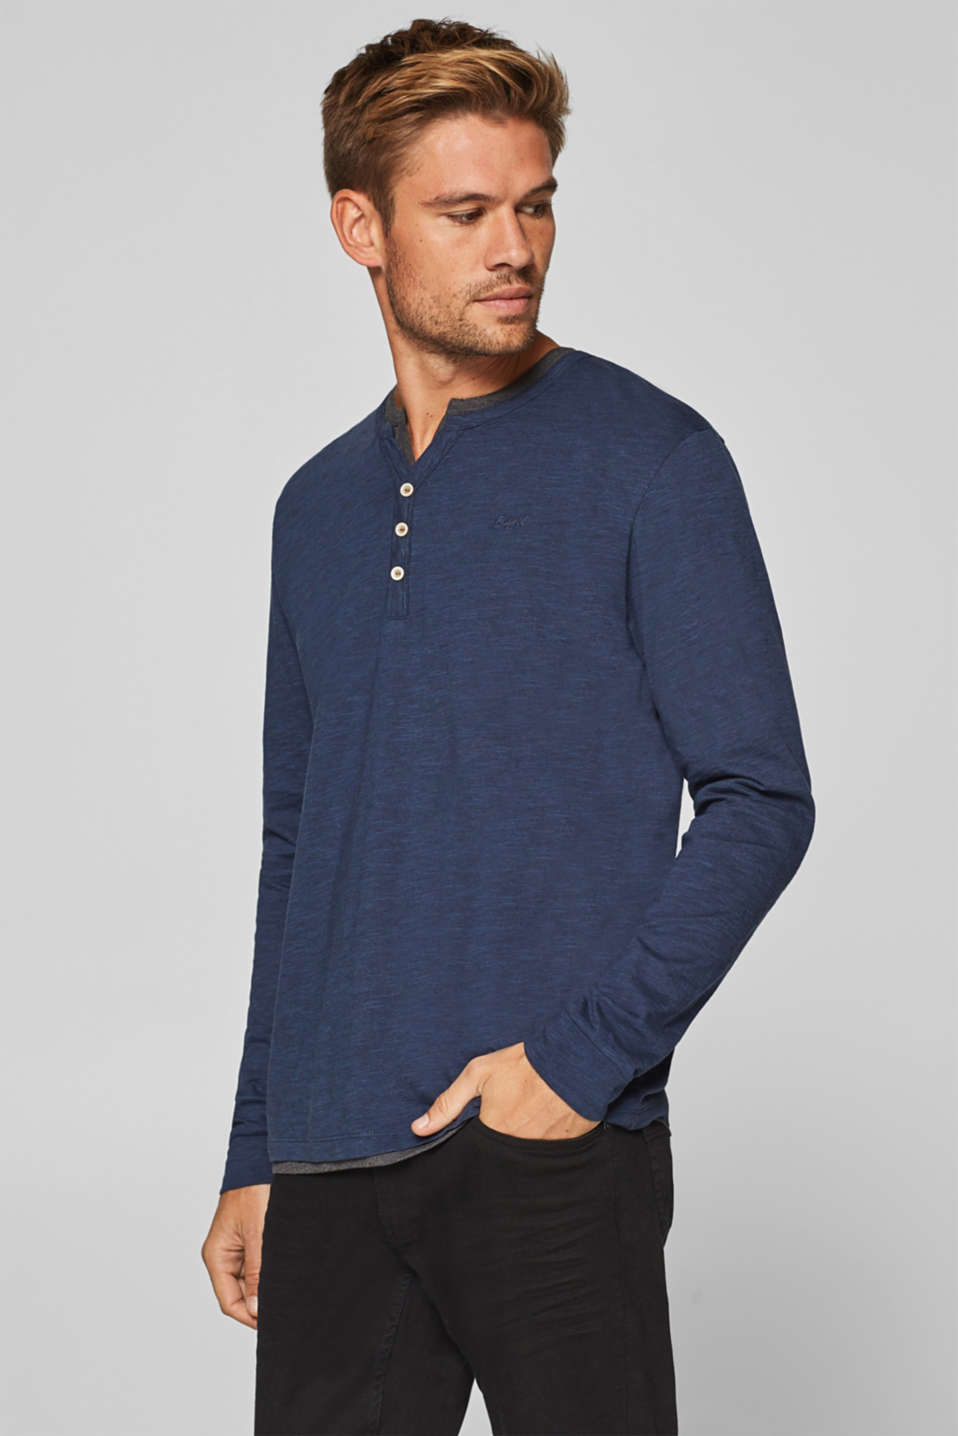 Esprit - Long sleeve T-shirt with layering effect, 100% cotton